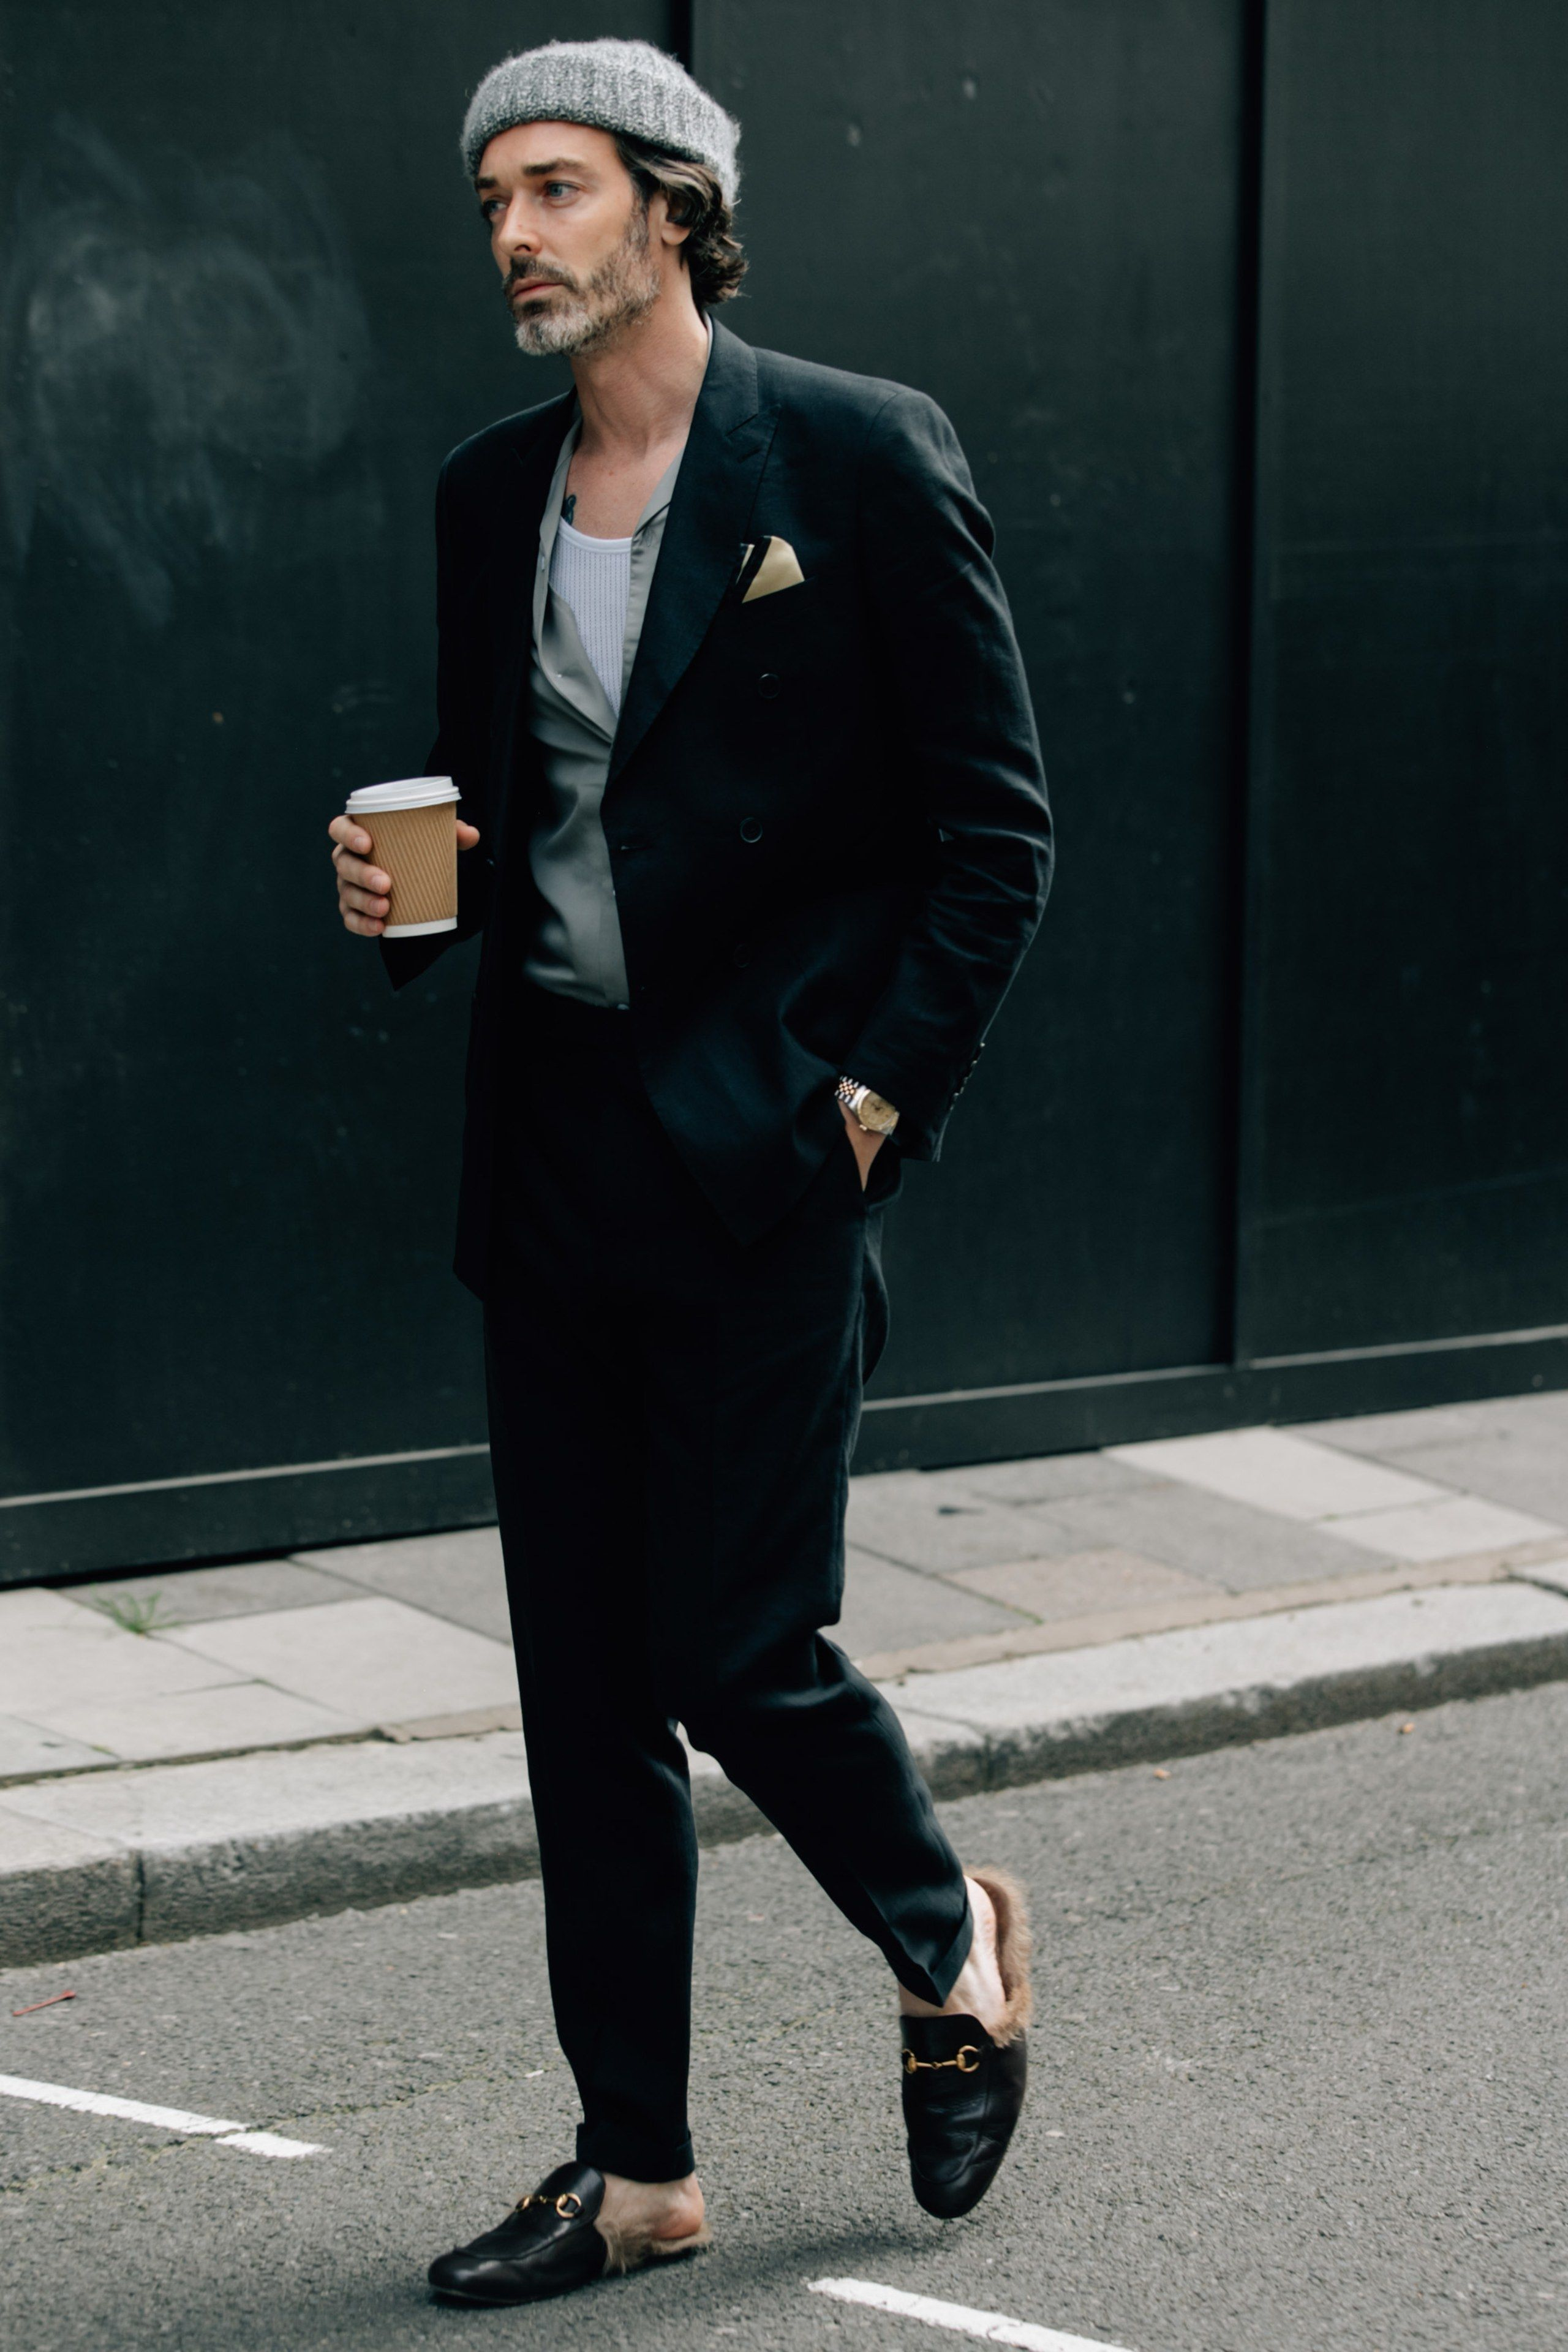 ae01340ffae2 Inside the London men s Spring Summer 2018 shows is where you ll find next  year s must-have menswear. The street style outside is where you ll find  this ...